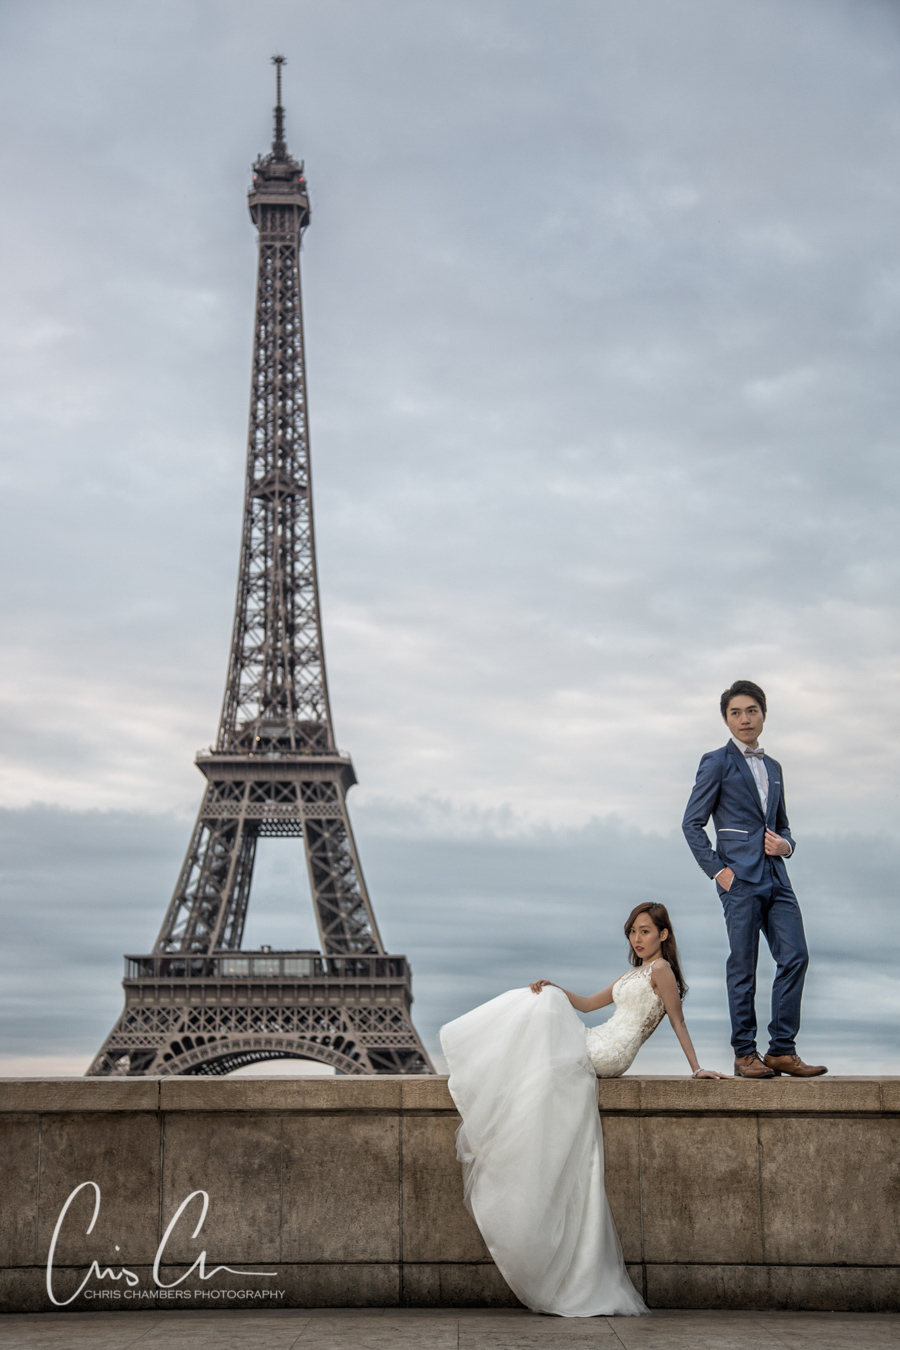 Paris pre-wedding photo shoot. Paris photographer